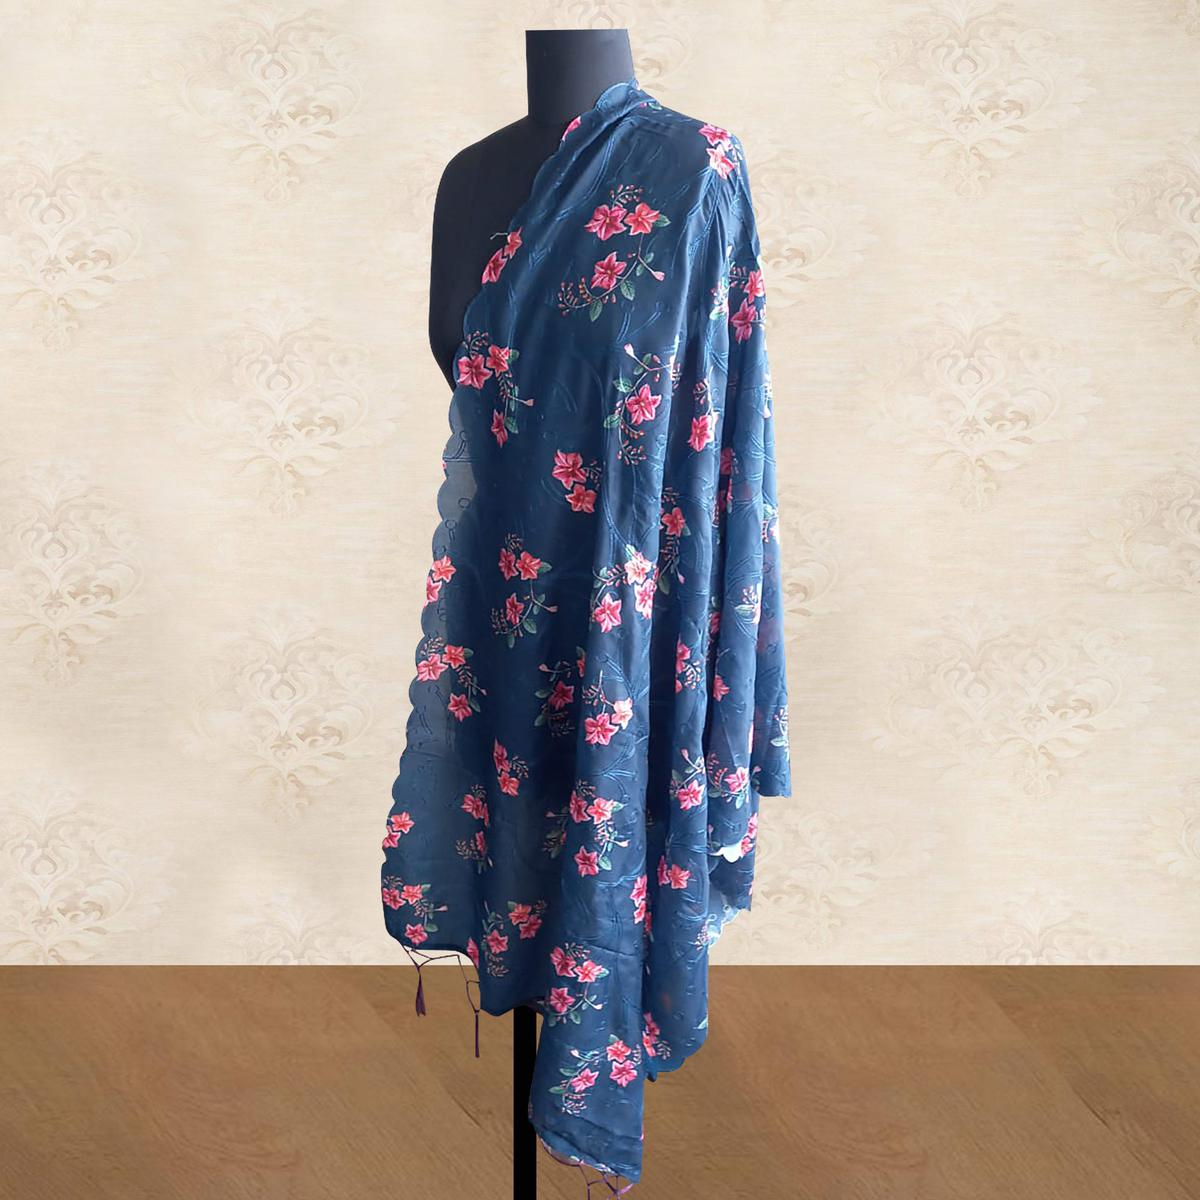 Entrancing Navy Blue Colored Casual Wear Digital Floral Printed Semi Cotton Muslin Dupatta With tassels